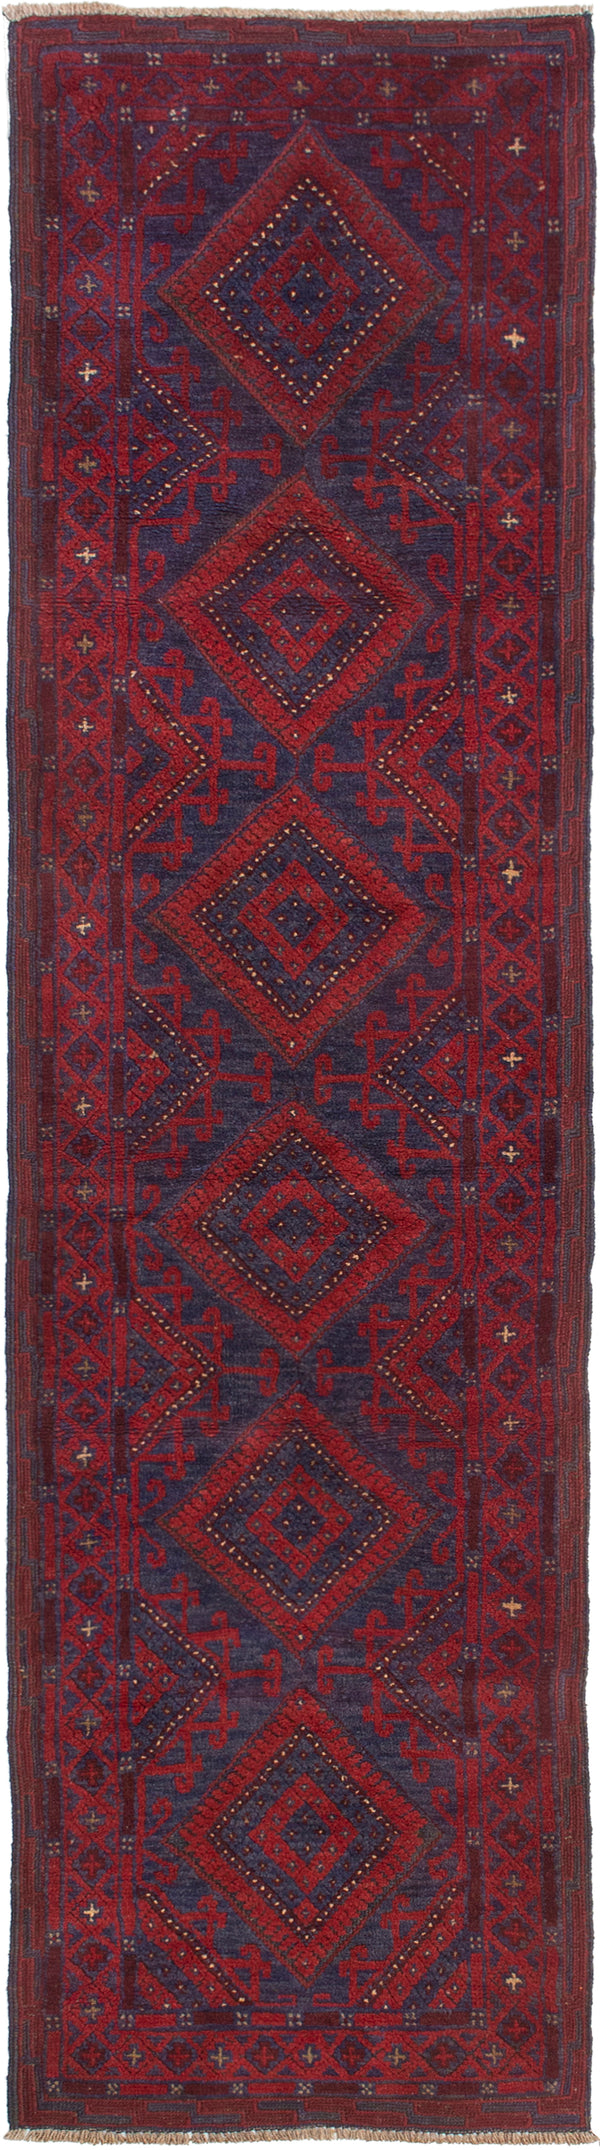 Hand-knotted Afghan Bordered  Tribal Tajik-Caucasian Runner rug  Dark Red 2.2 x 8.1